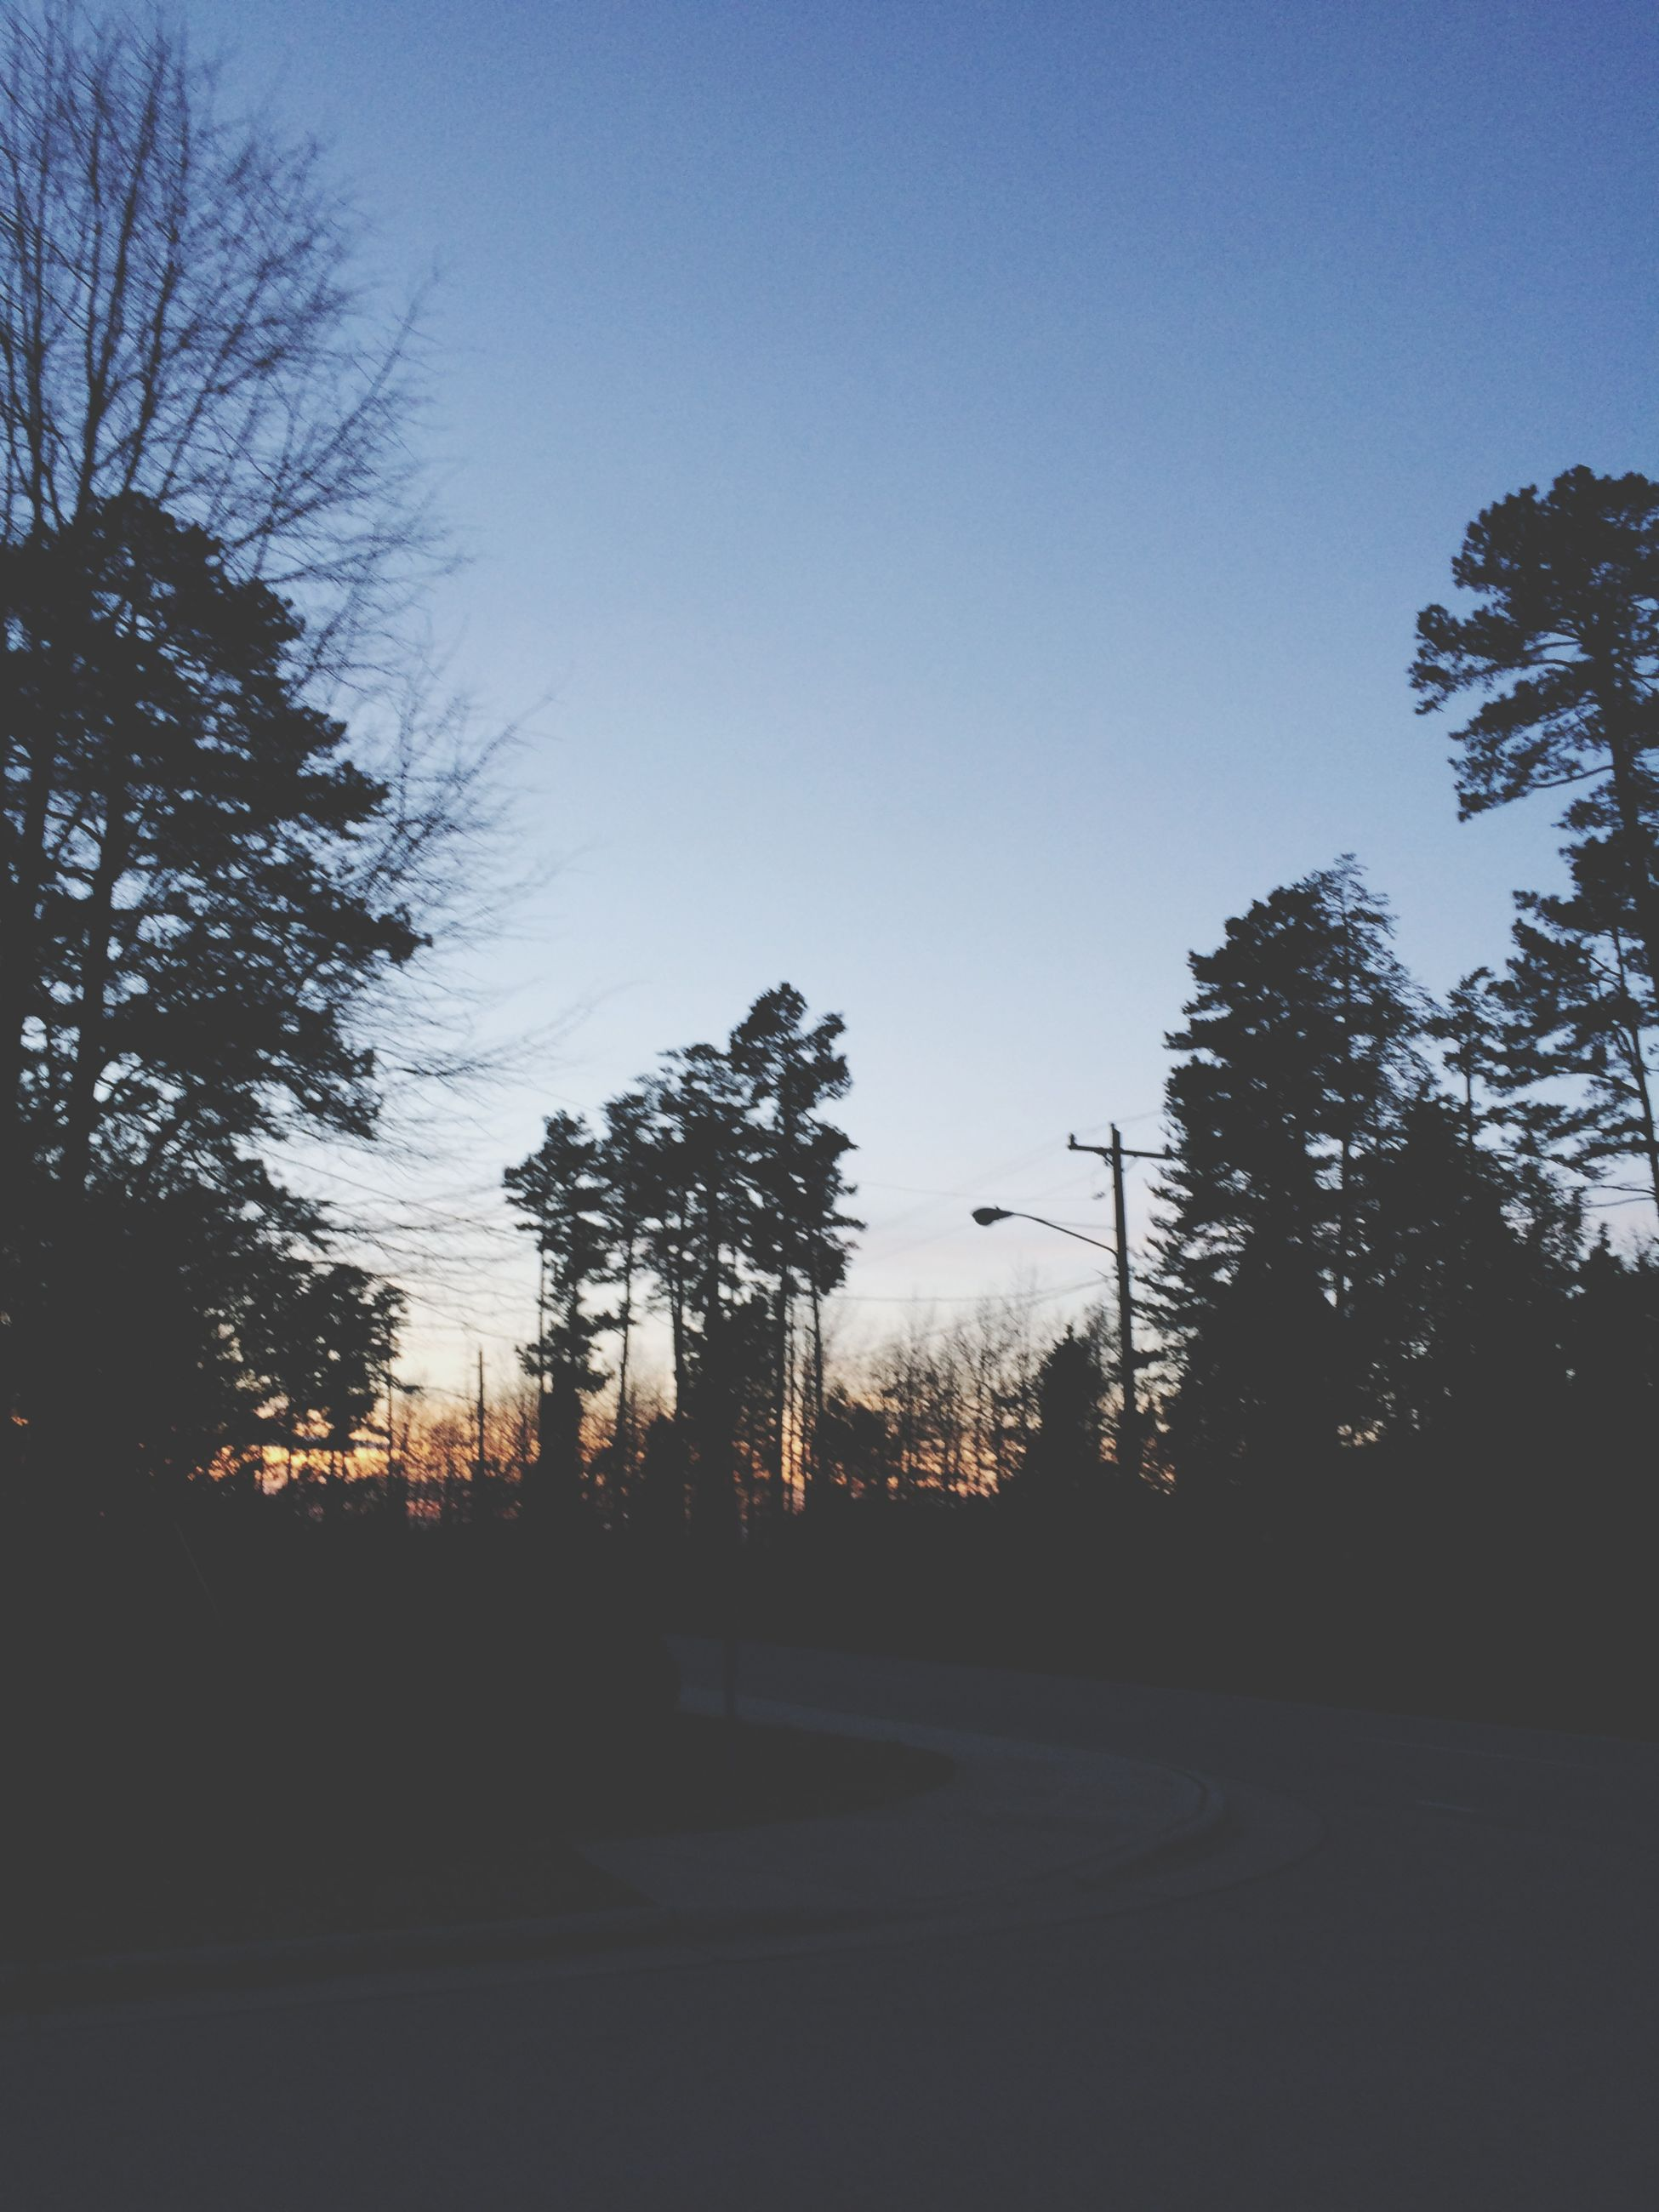 tree, silhouette, clear sky, blue, sky, tranquility, sunset, tranquil scene, copy space, dusk, scenics, nature, beauty in nature, bare tree, road, outdoors, no people, growth, dark, landscape